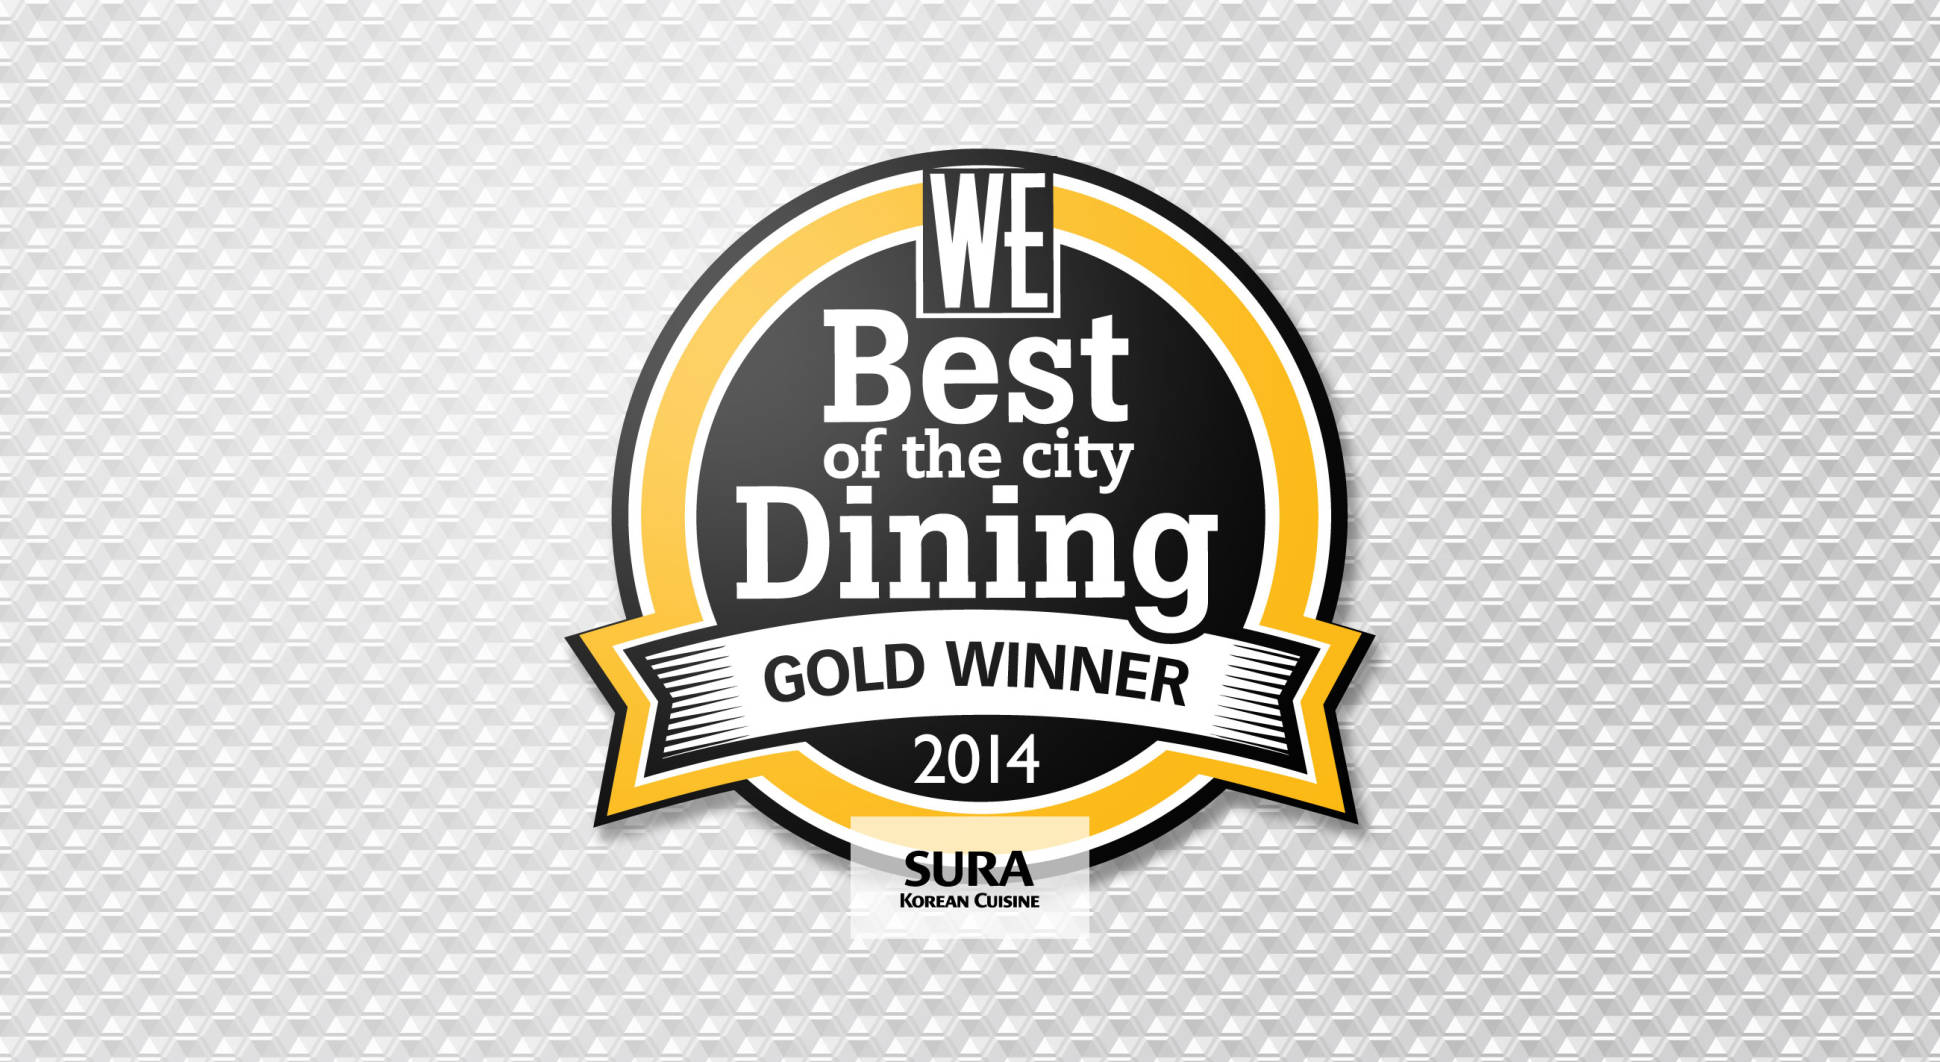 Sura is the best Korean winner of WE Vancouver's best of the city dining awards 2014